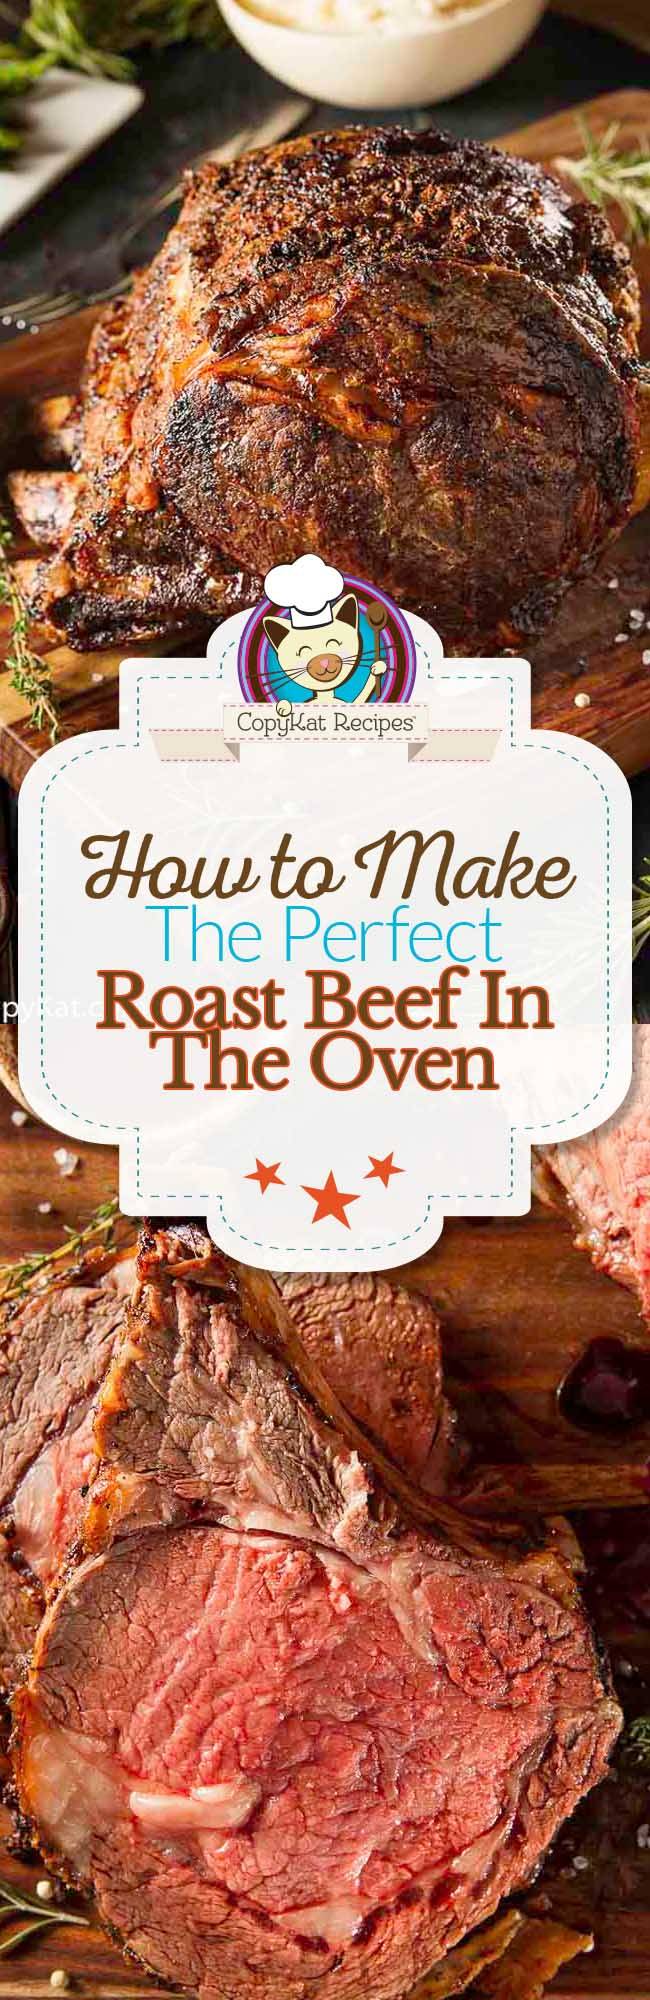 Step by Step instructions on how to make the perfect roast beef in the oven. #oven #beef #roastbeef #howtocook #howlongtocook